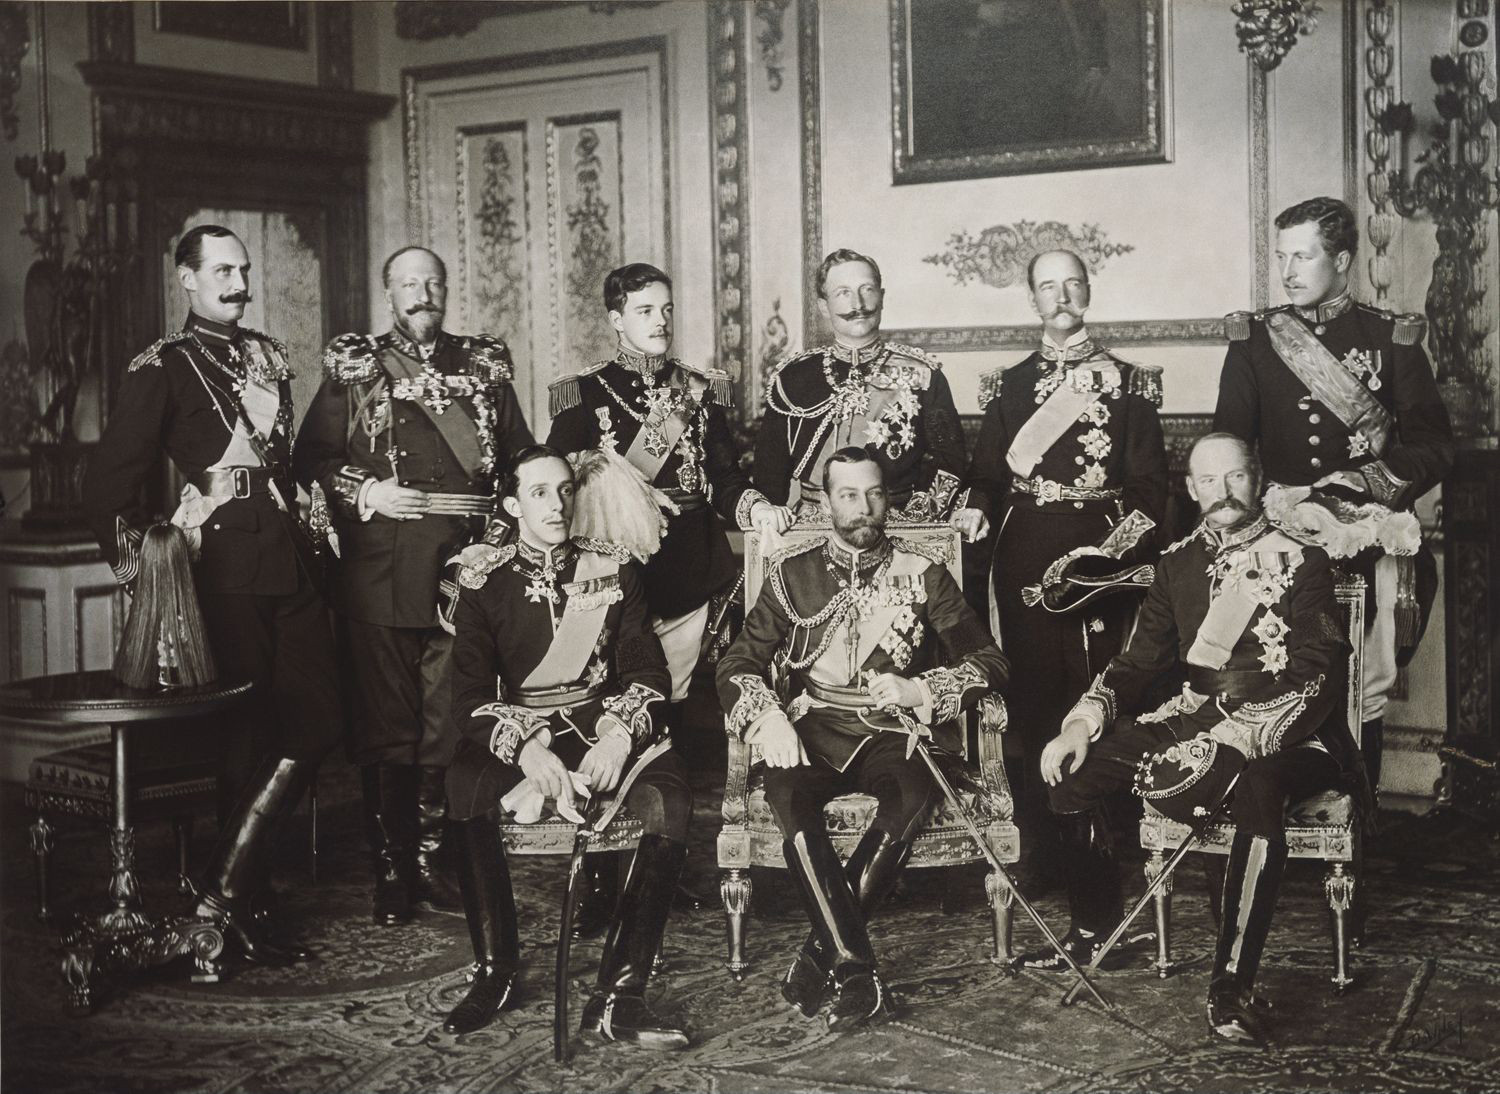 9 Kings, one photo. Back row, l. to r.: Haakon VII of Norway, Ferdinand I of Bulgaria, Manuel II of Portugal, Wilhelm II of Germany, George I of Greece and Albert I of Belgium; front row: Alphonso XIII of Spain, George V of the United Kingdom, and Frederick VIII of Denmark.